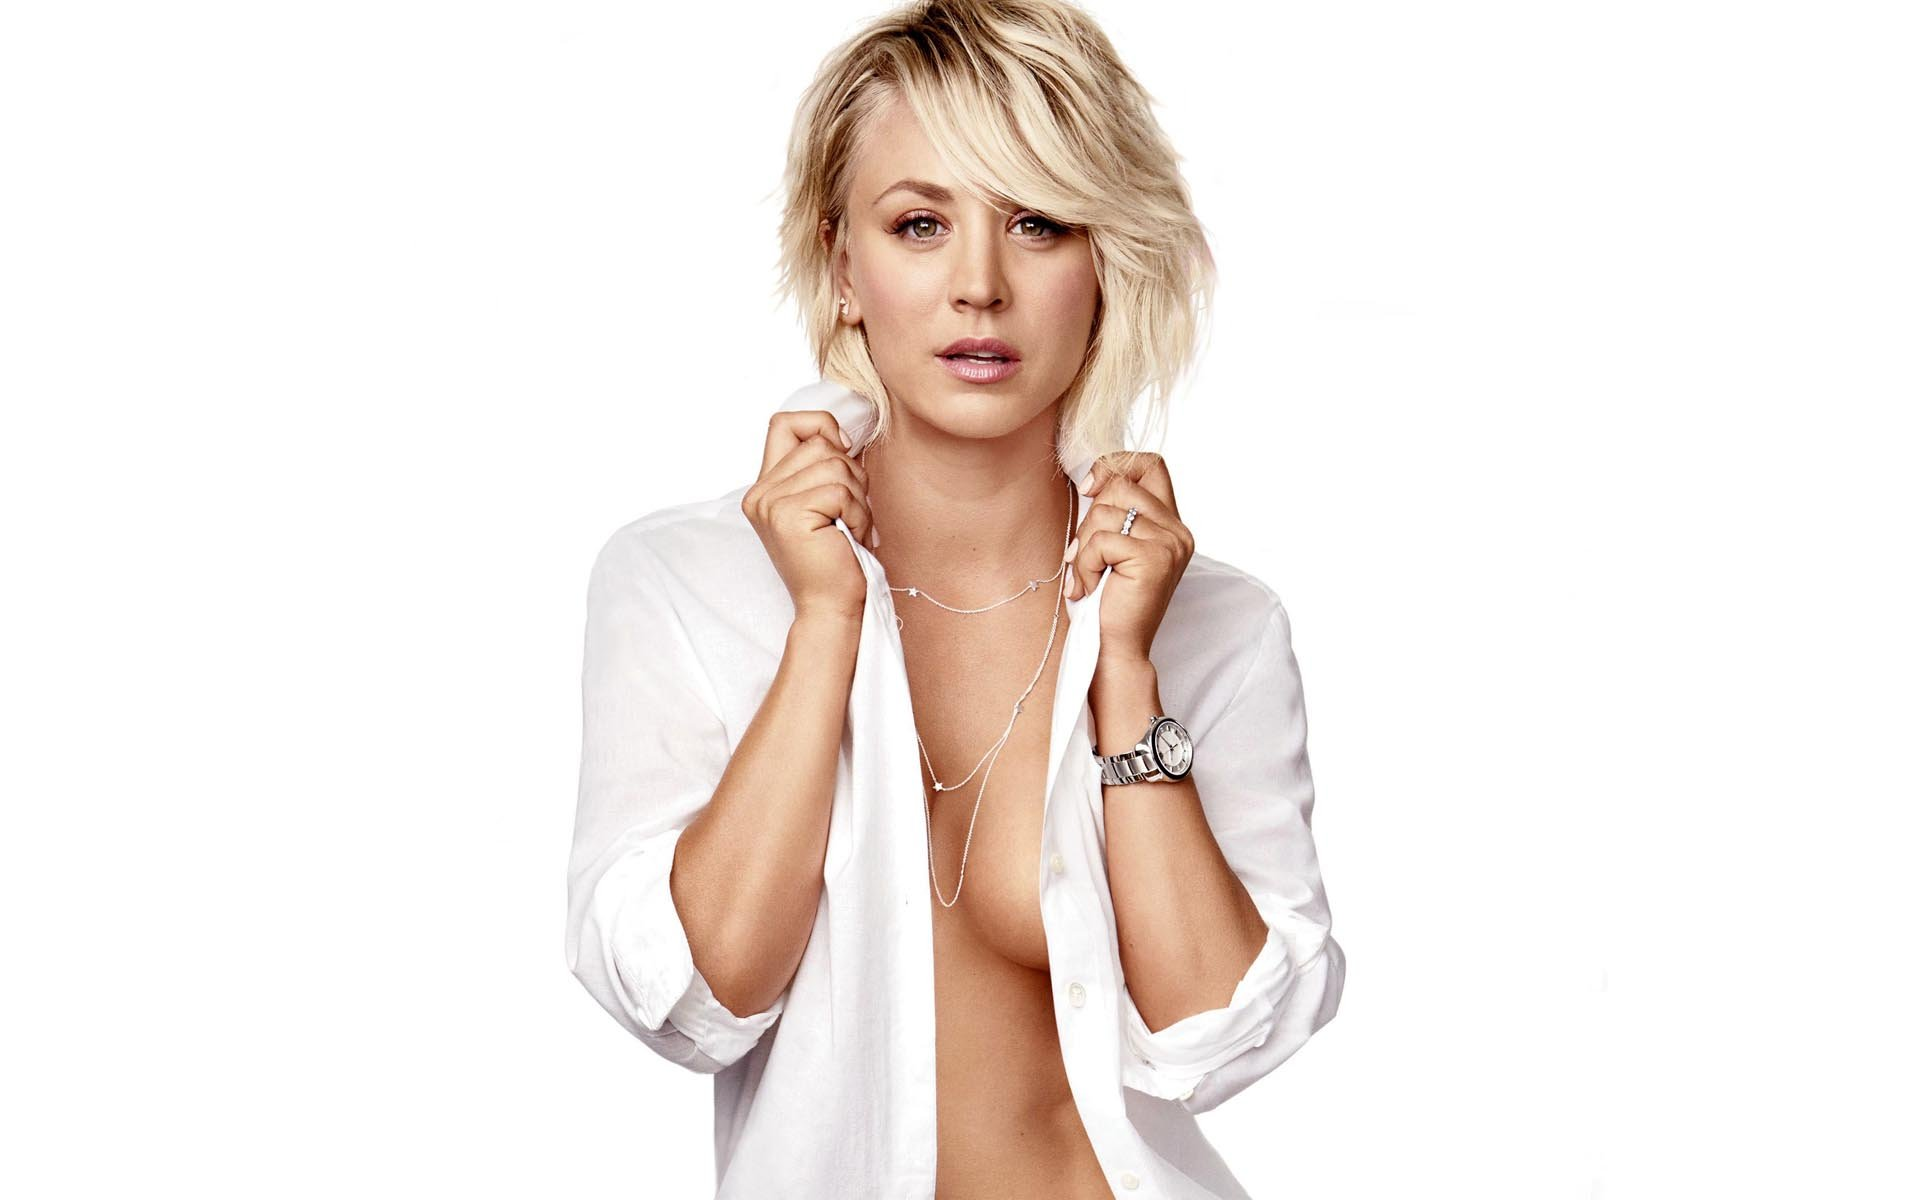 Kelly cuoco naked images 79